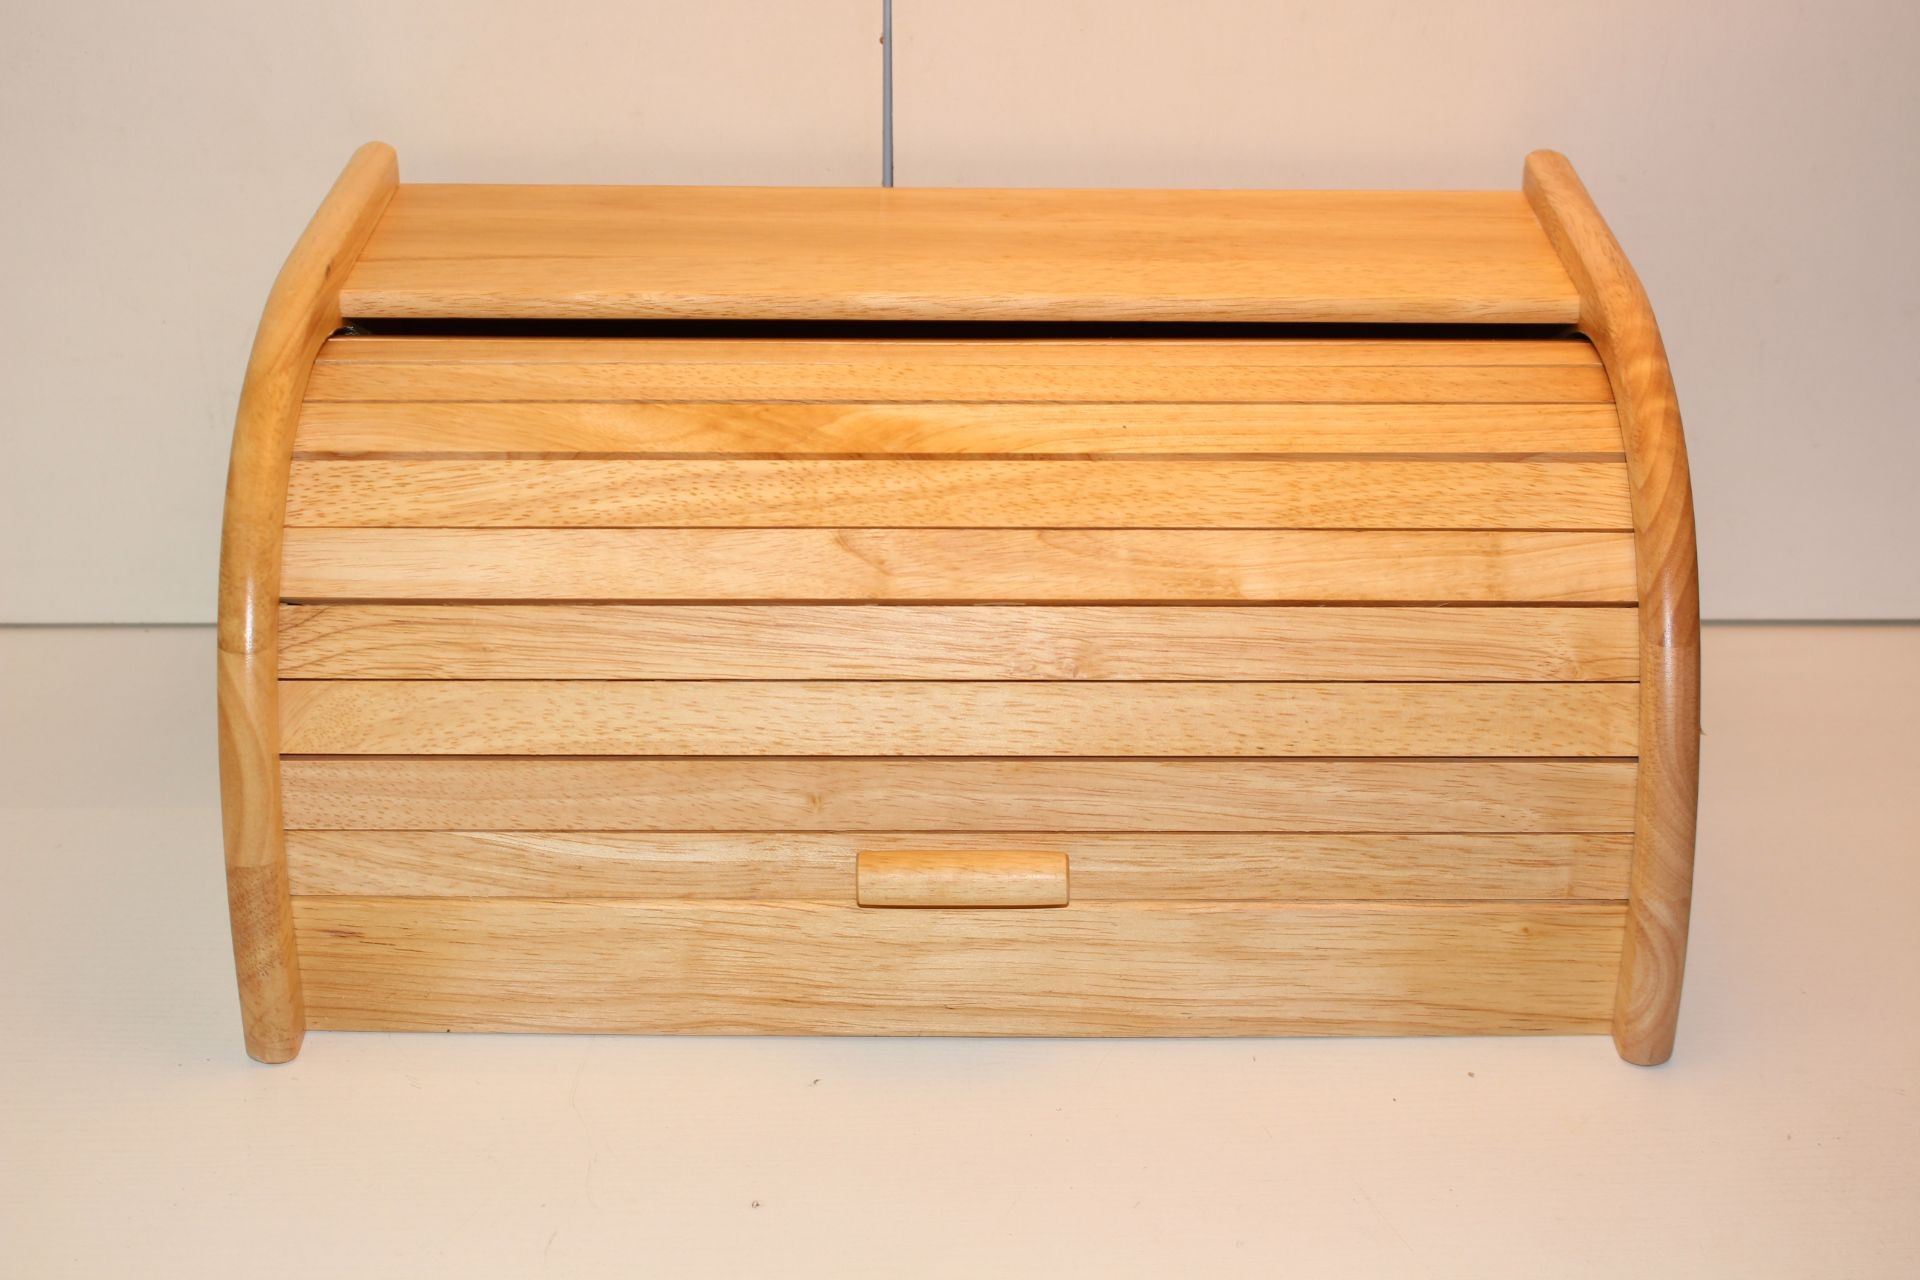 UNBOXED APOLLO WOODEN BREADBINCondition ReportAppraisal Available on Request- All Items are